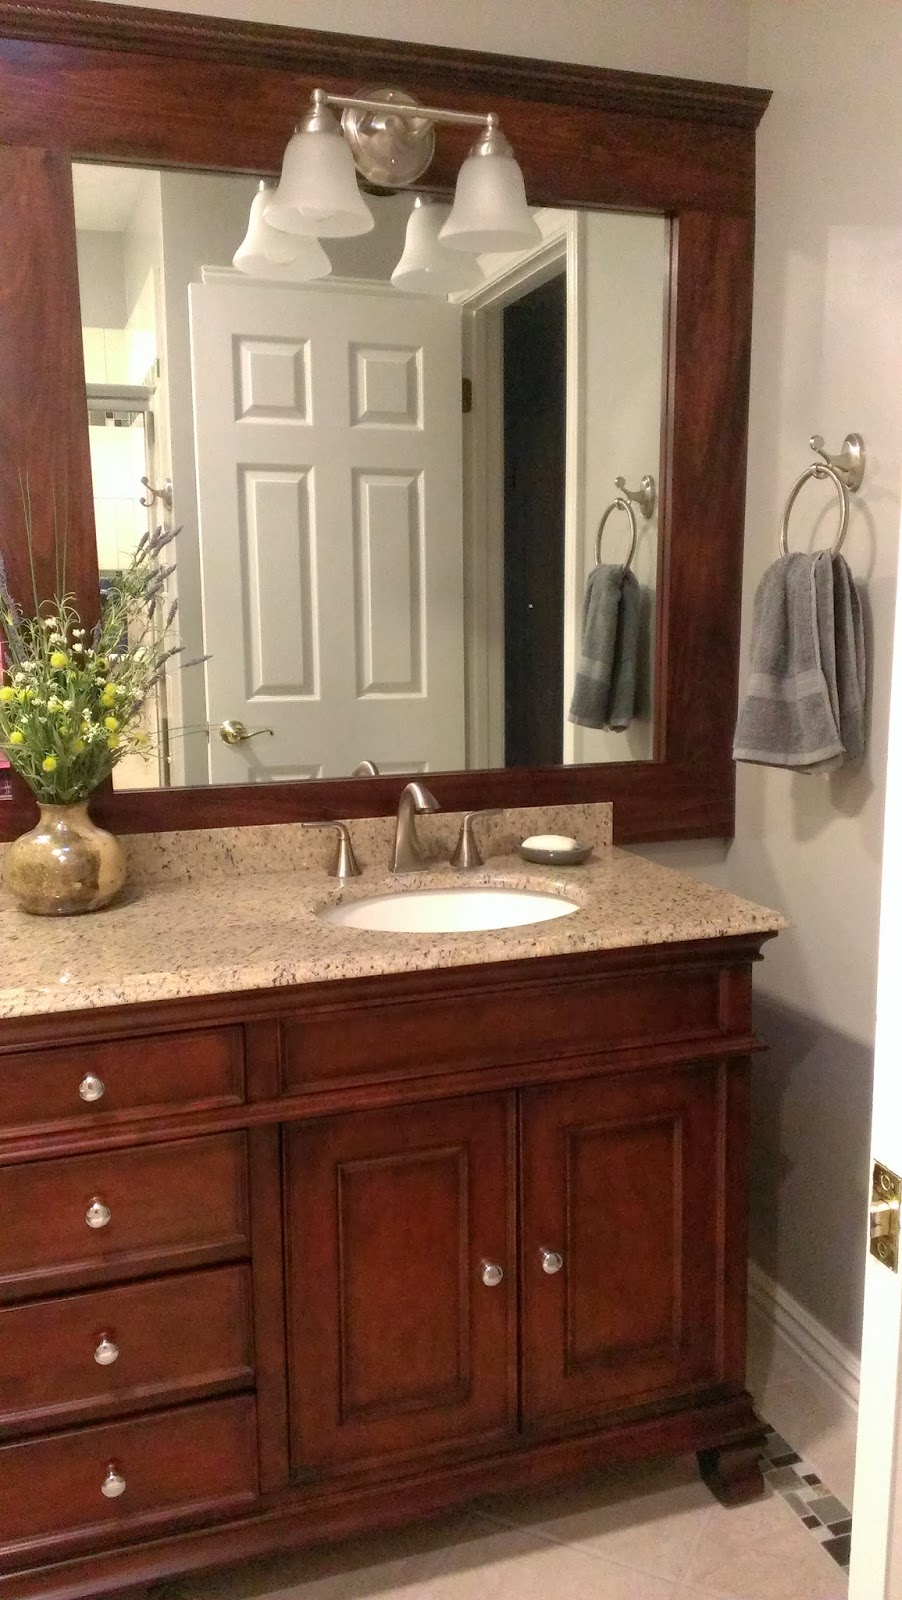 How to Frame Your Bathroom Mirror in Practically No Time  Frame Your Bathroom Mirror, Bathroom Updates, How to Update Your Bathroom Fast, Easy Ways to Frame Your Bathroom Mirror, Easy Bathroom Updates, Popular Pin